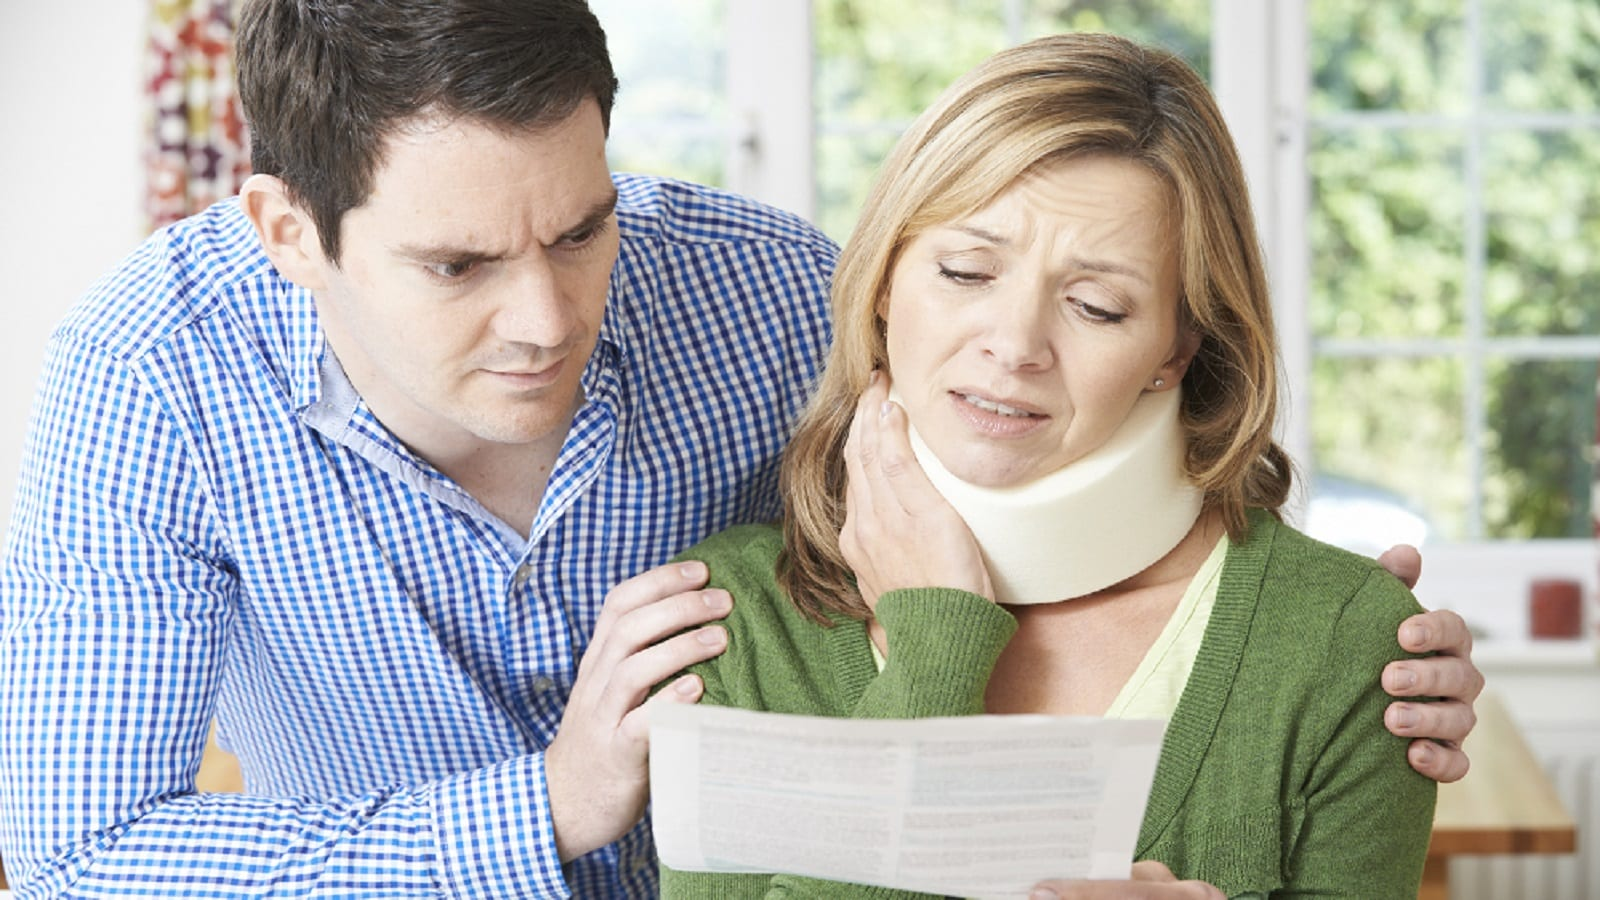 Woman Wearing A Neck Brace After An Accident Stock Photo